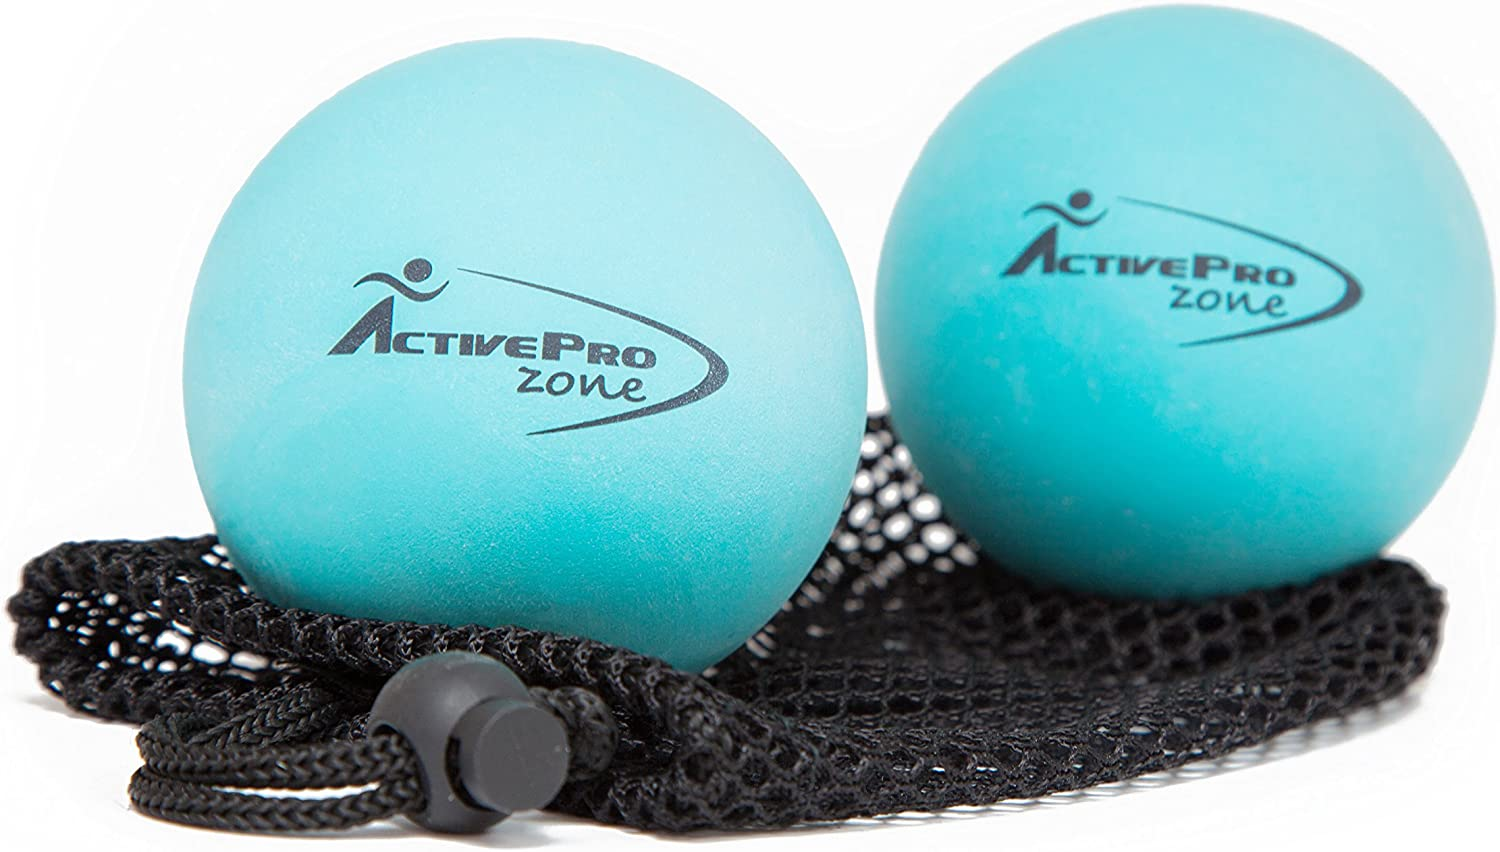 B01DID2TN6 ActiveProZone Therapy Massage Ball - Instant Muscle Pain Relief. Proven Effective for Myofascial Release, Deep Tissue Pressure, Yoga & Trigger Point Treatments. Set - 2 Extra Firm Balls W/Mesh Bag. 81IU3A6MAOL